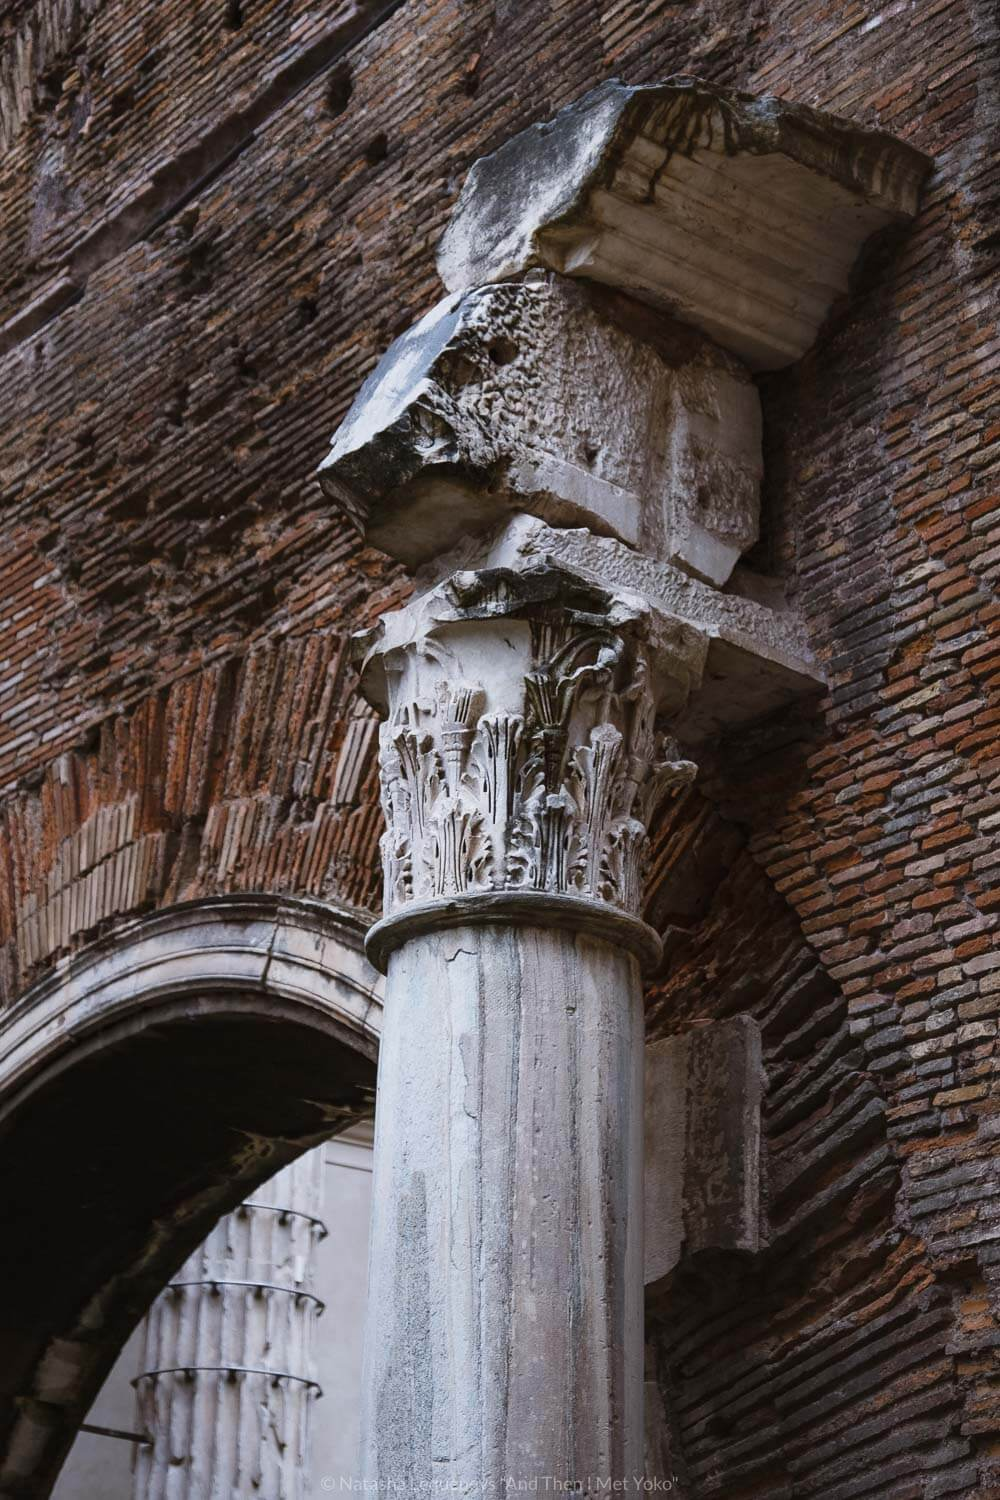 """Columns in the Jewish Ghetto, Rome. Travel photography and guide by © Natasha Lequepeys for """"And Then I Met Yoko"""". #rome #jewishghettorome #italy #fujifilm #travelphotography"""